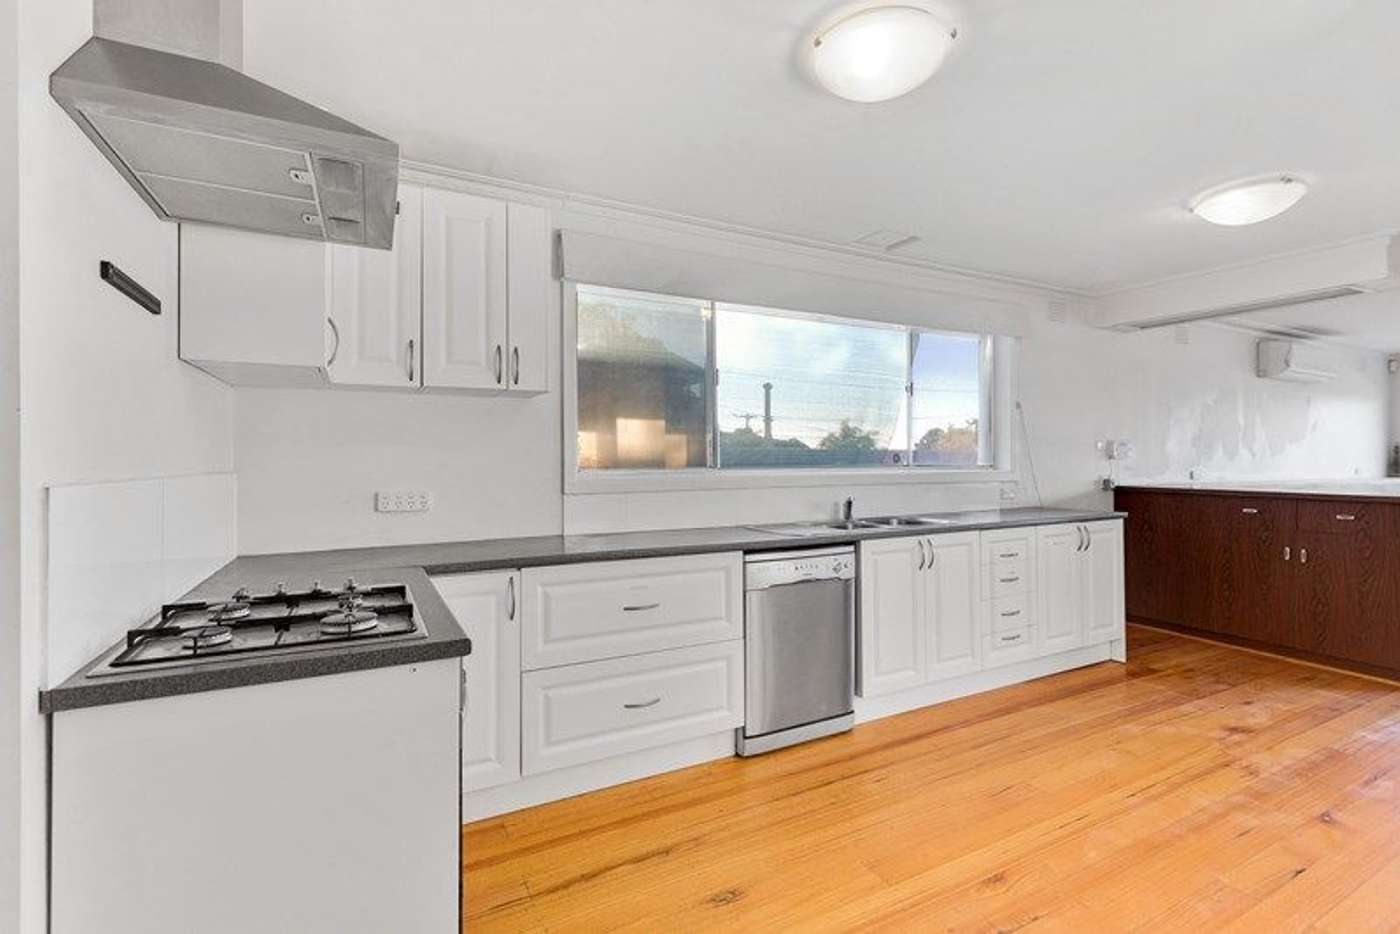 Fifth view of Homely house listing, 14 Fenwick Street, Frankston VIC 3199